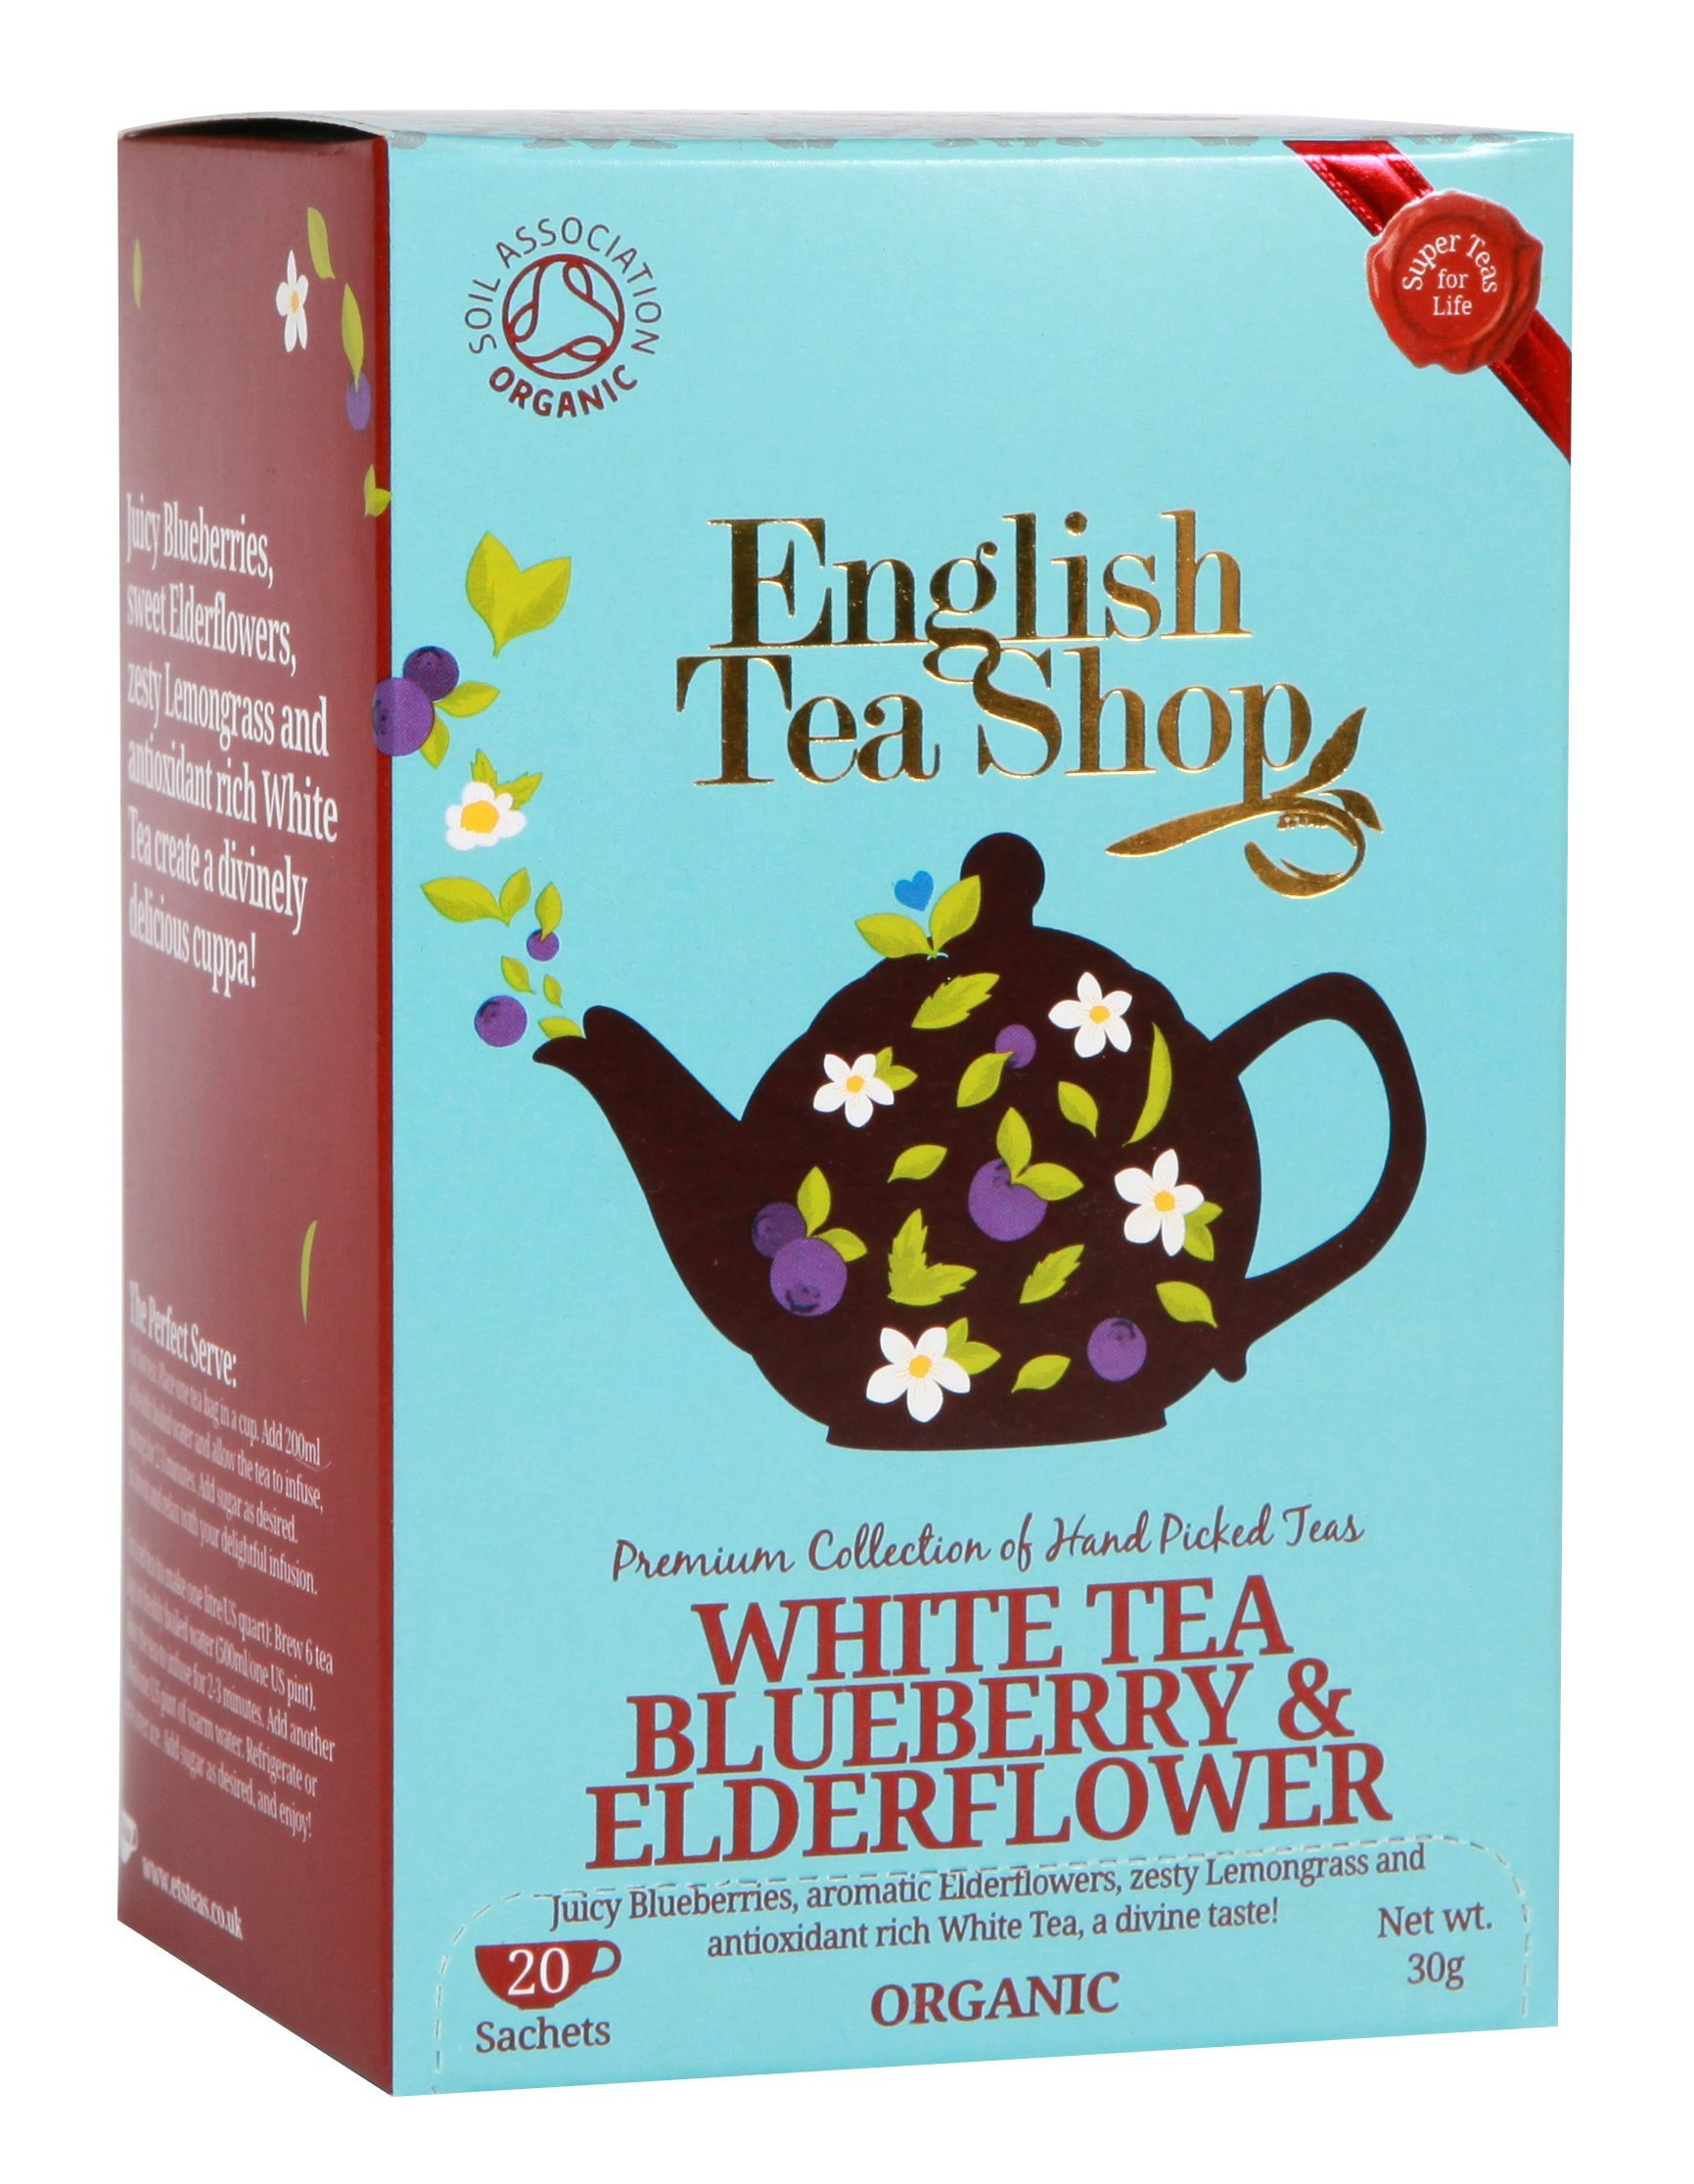 English Tea Shop White Tea Blueberry and Elderflower Tea Bags, 30 Gram (Pack of 6) by English Tea Shop